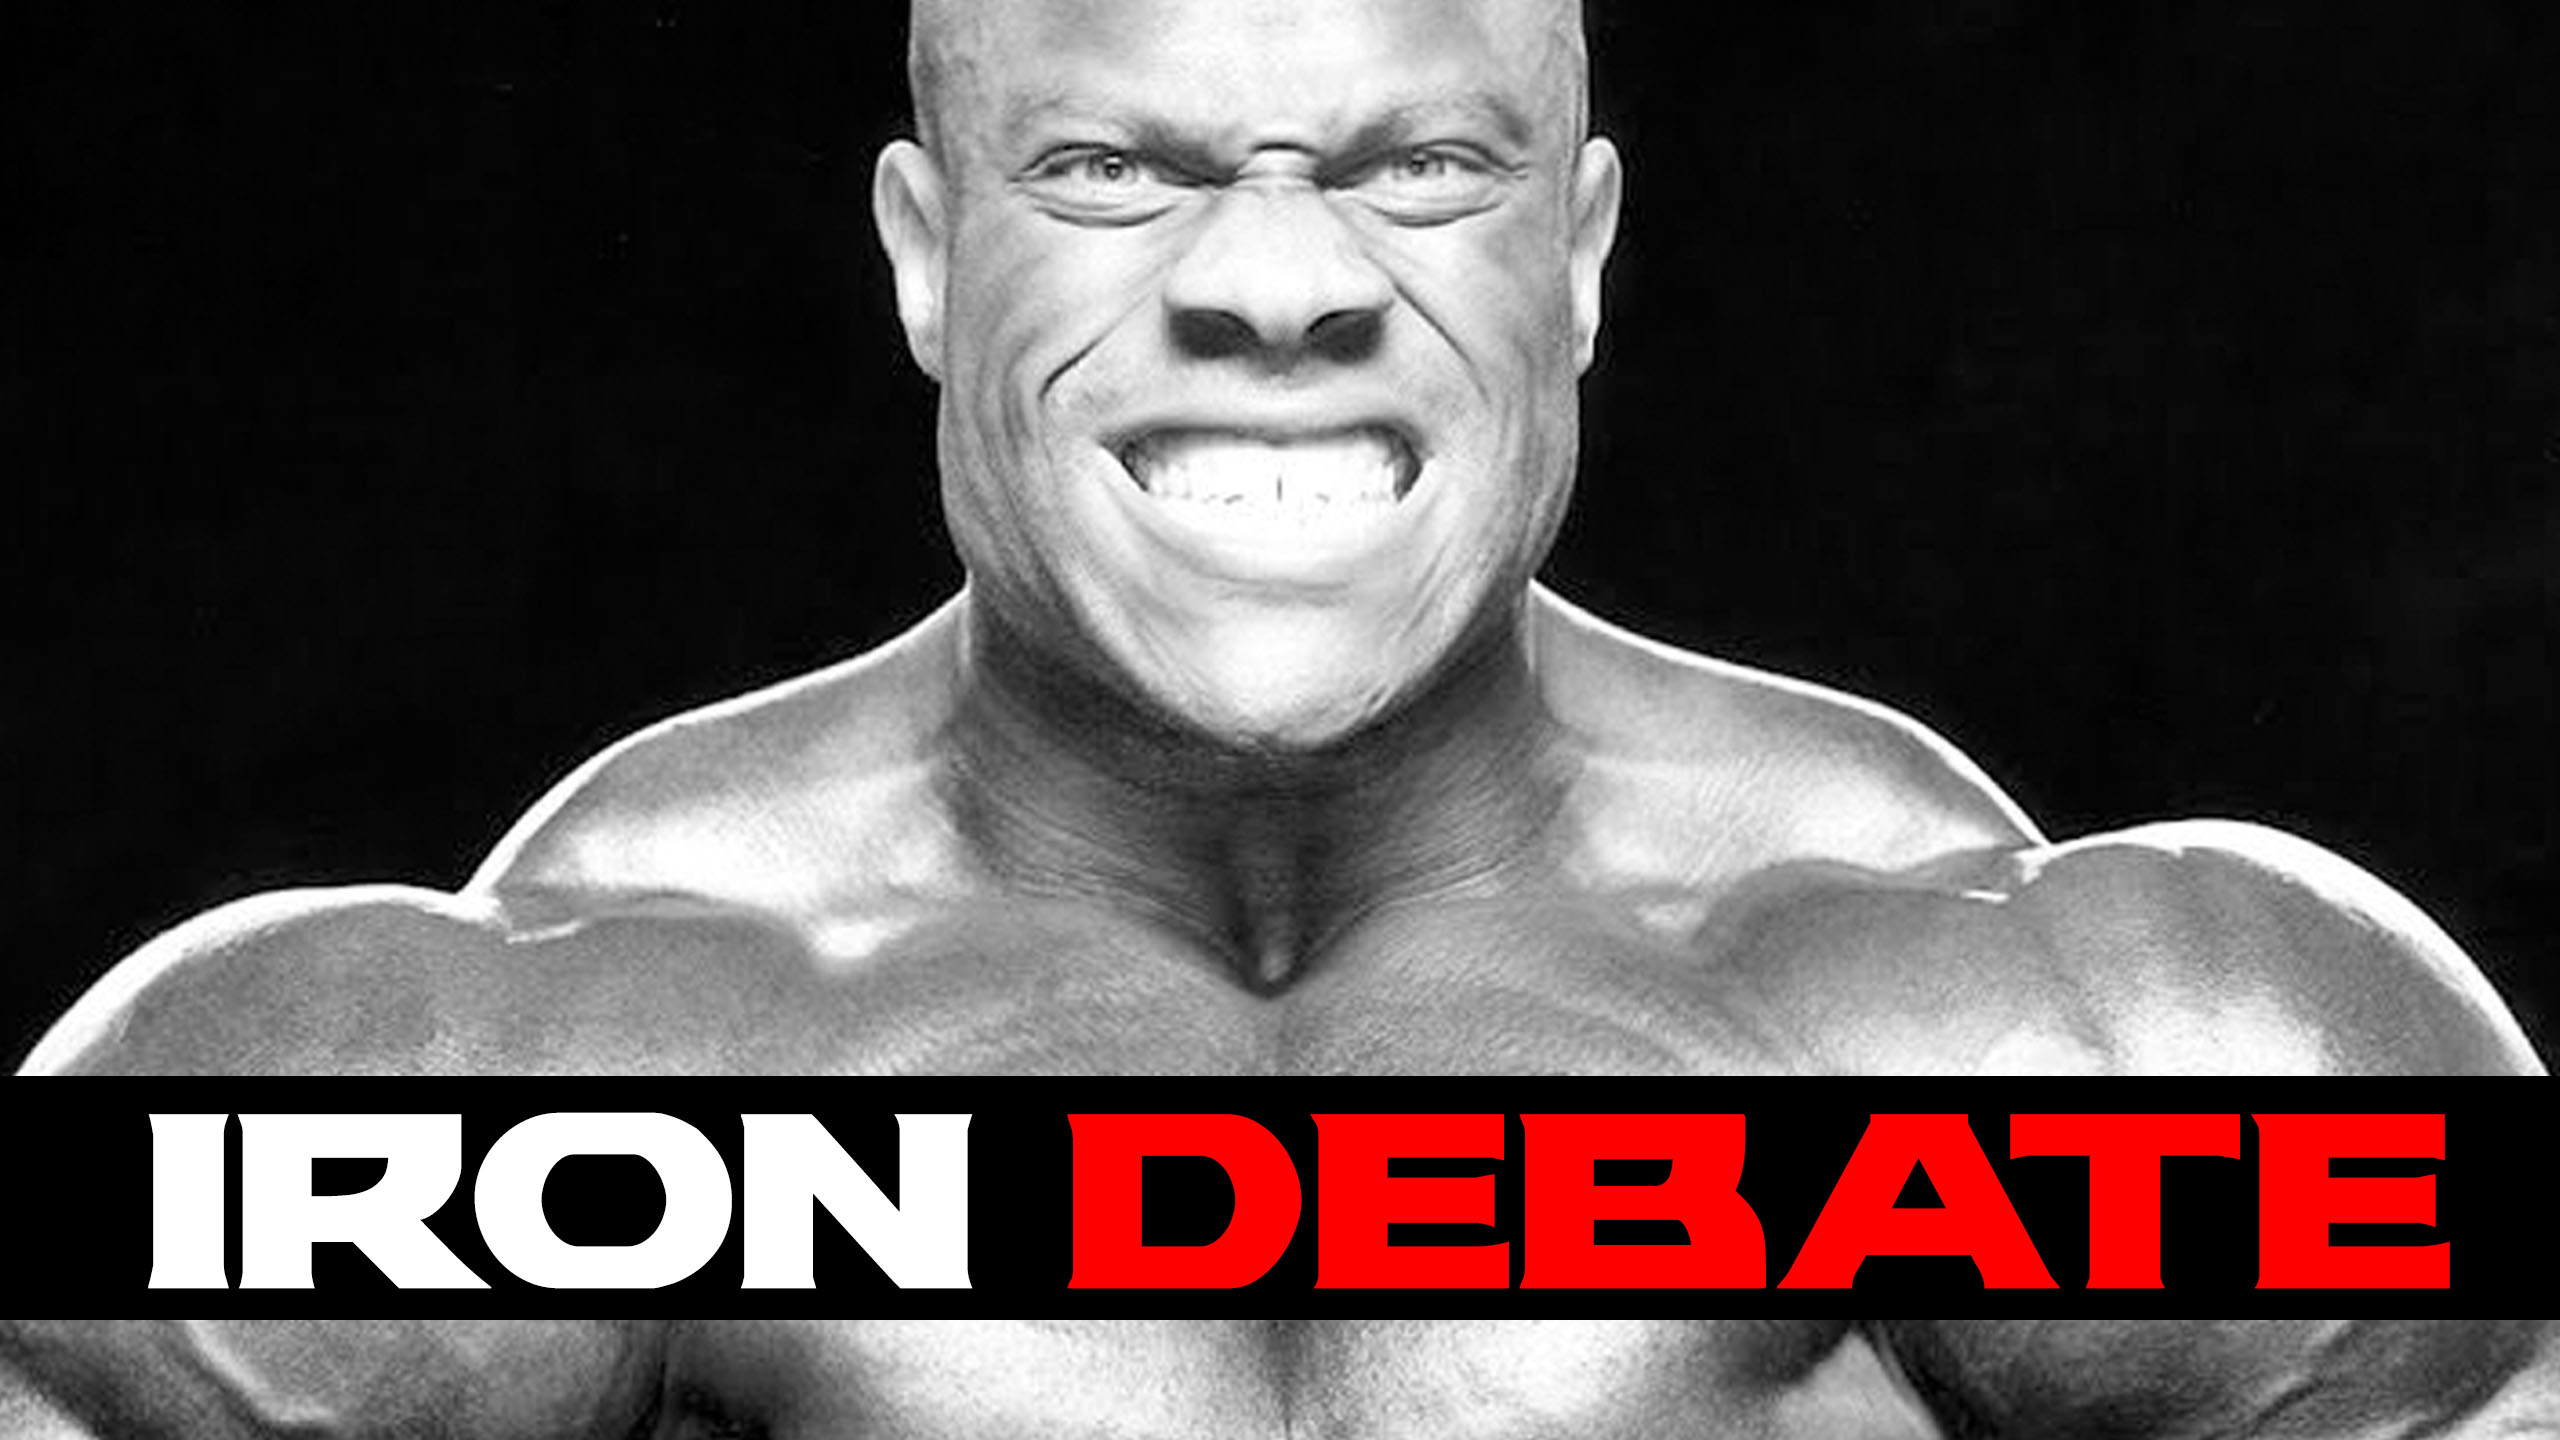 phil heath iron debate 2018